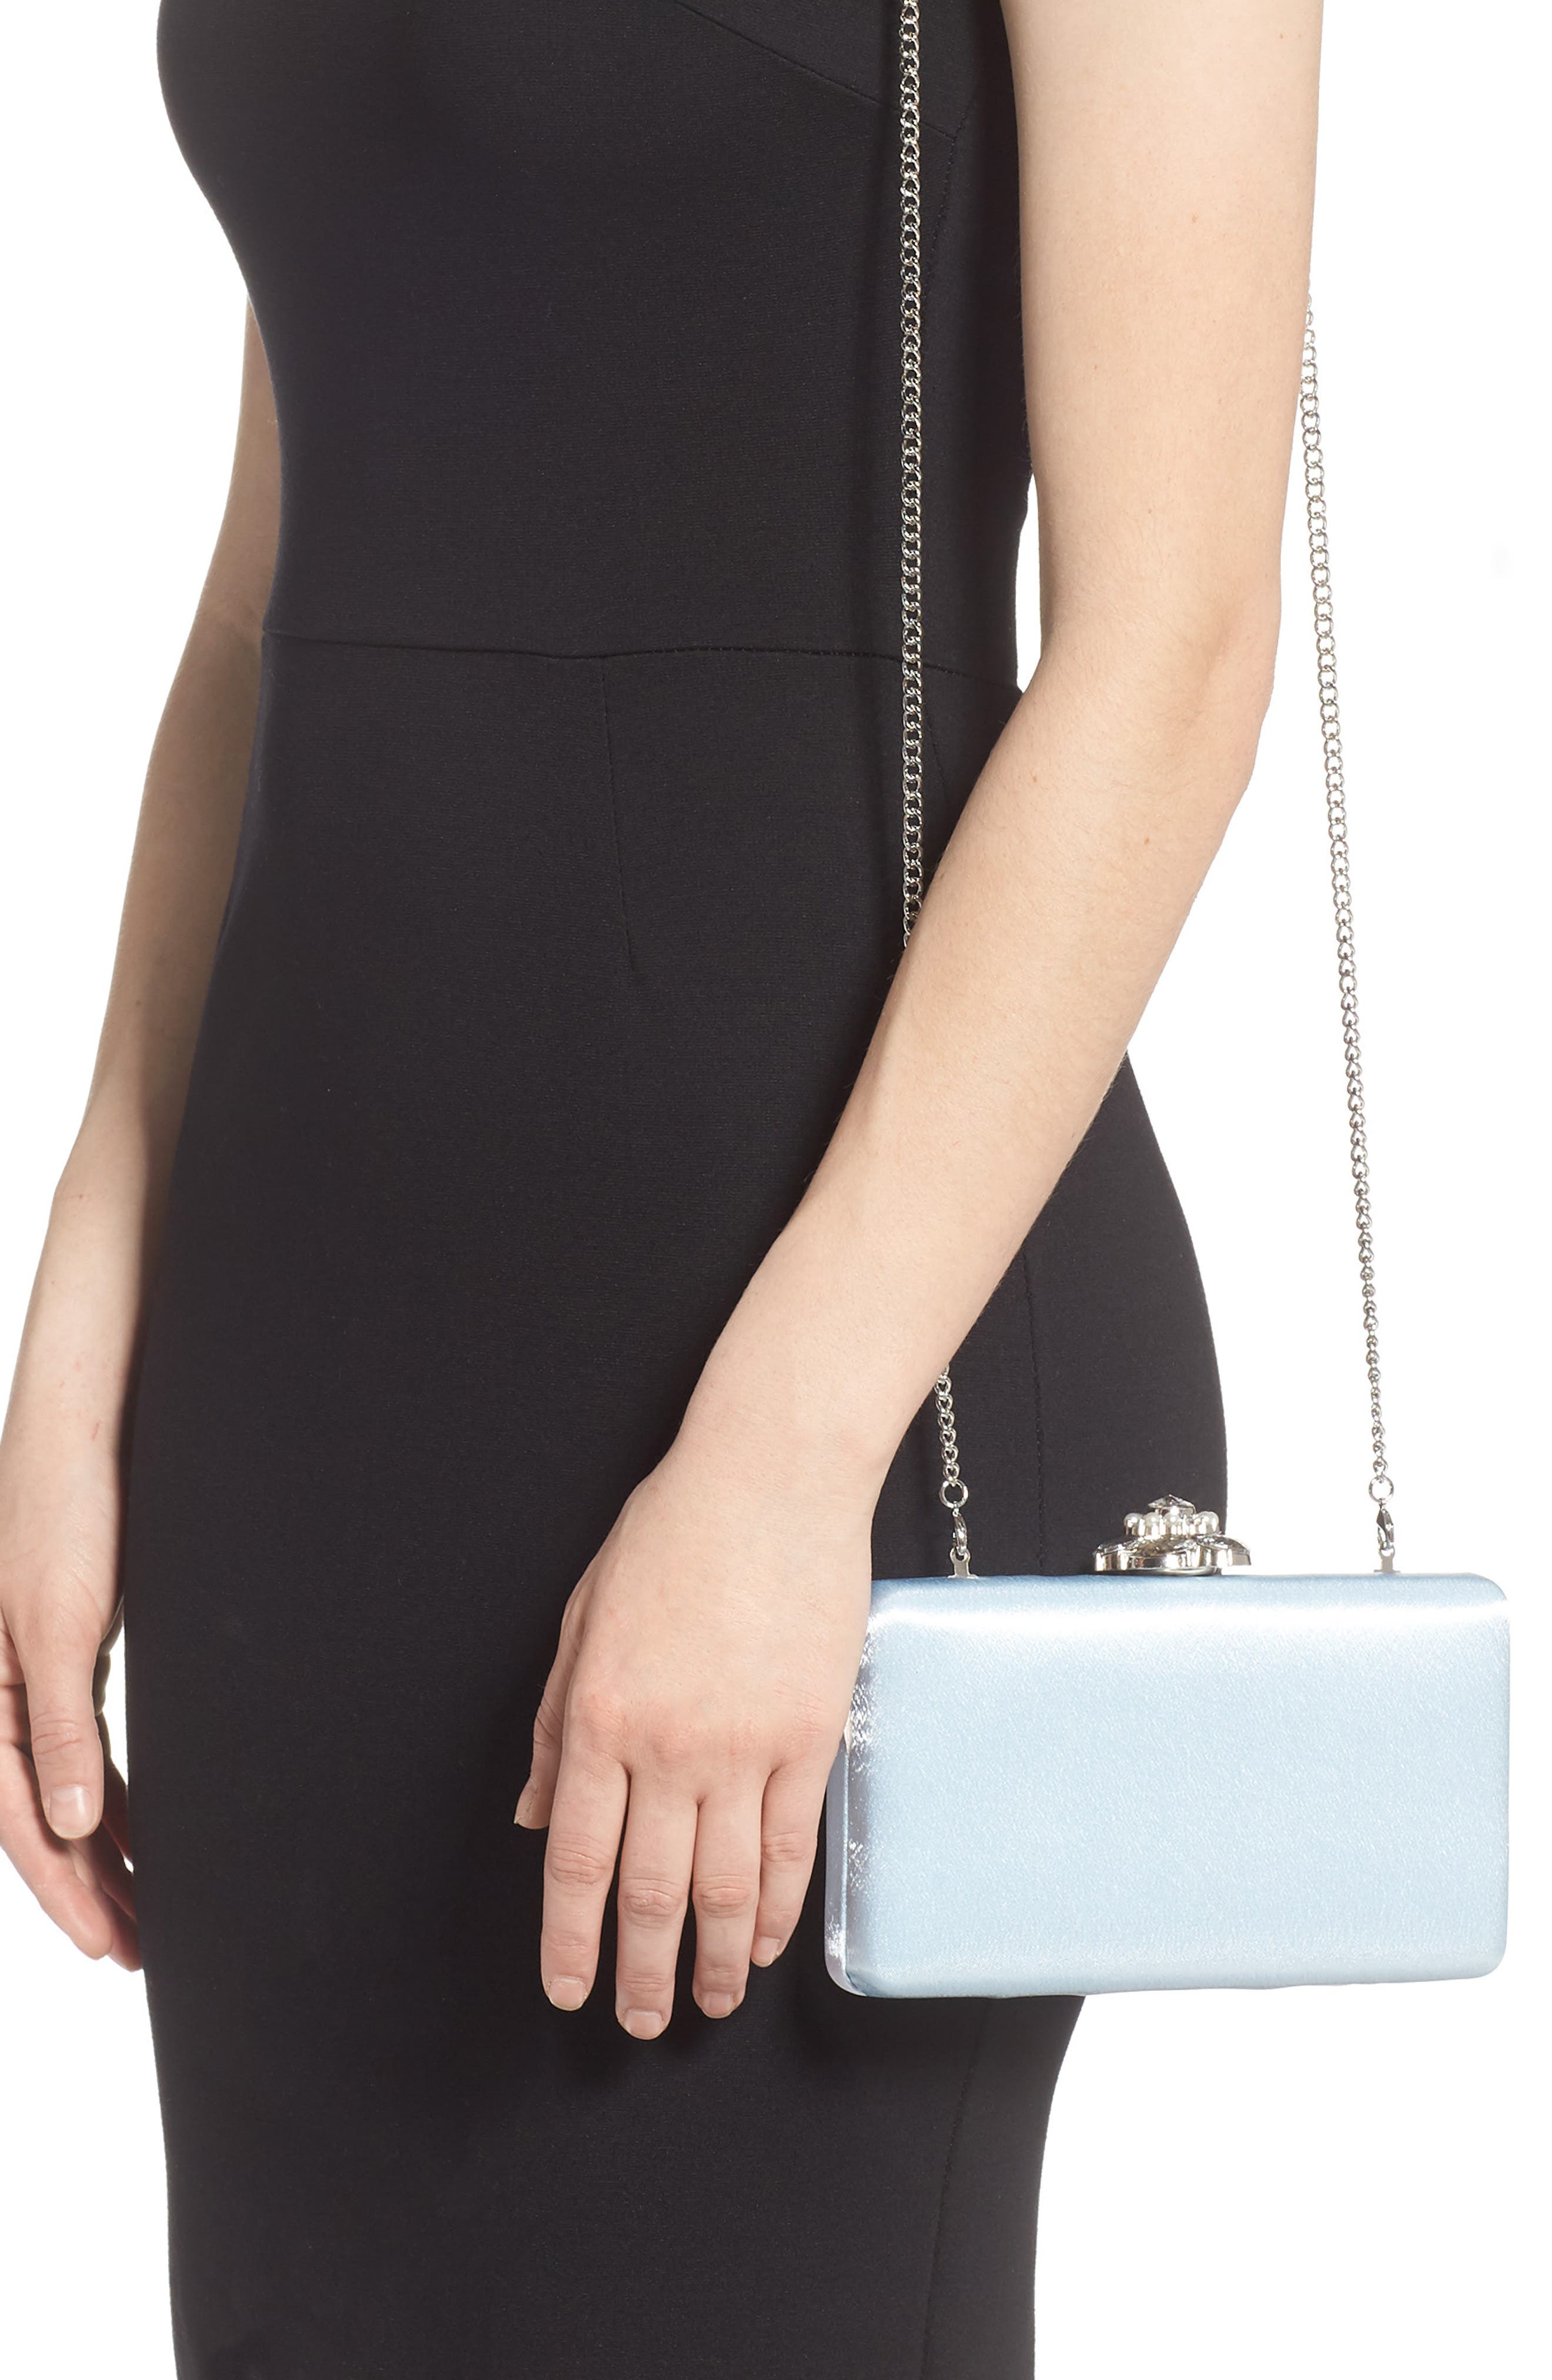 731ad45b85 Clutches & Evening Bags Wedding Guest Outfits | Nordstrom